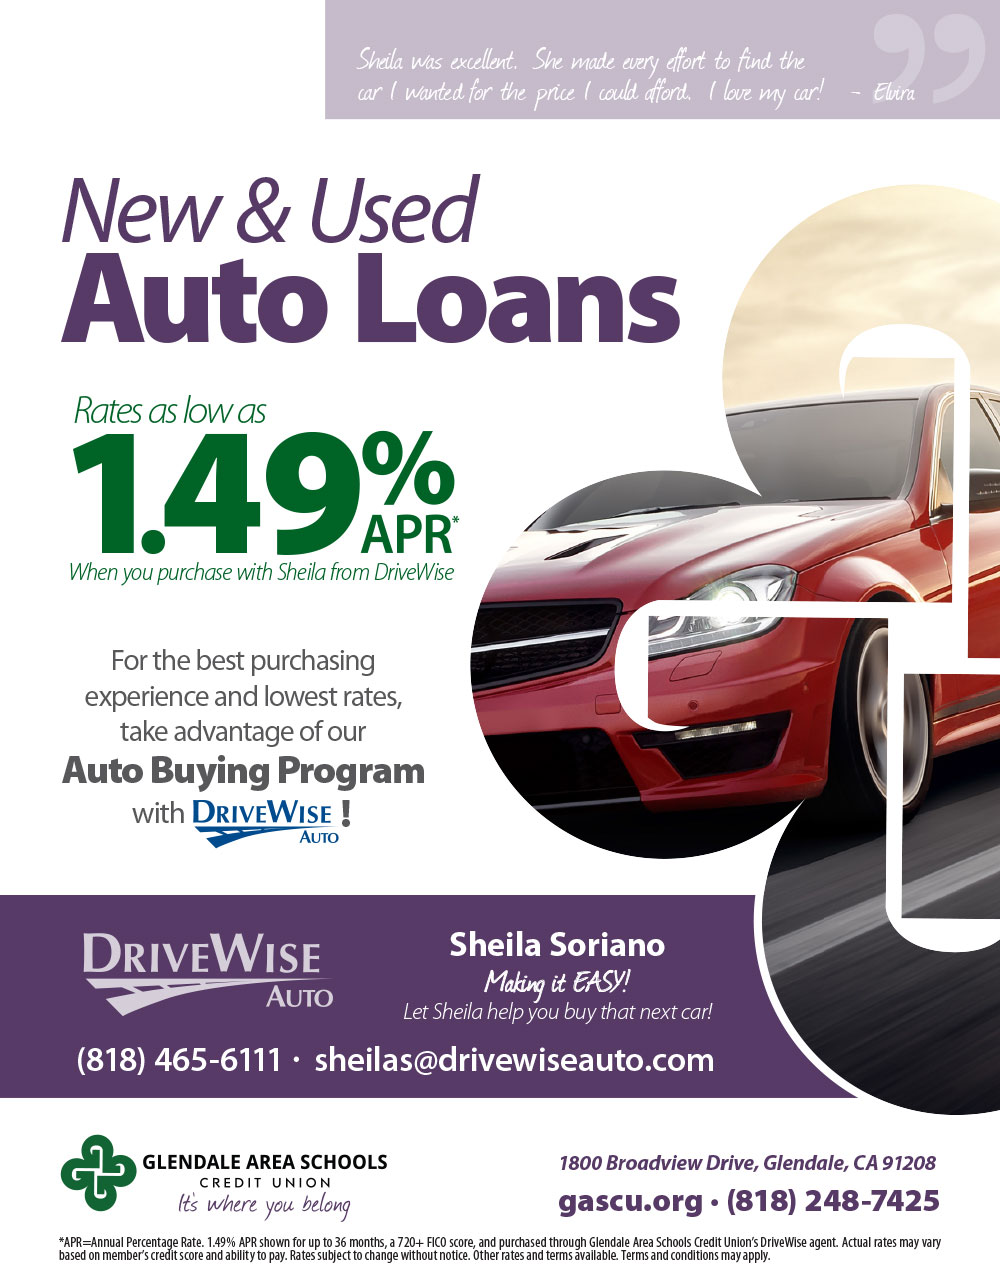 New and Used Auto Loans by Drivewise